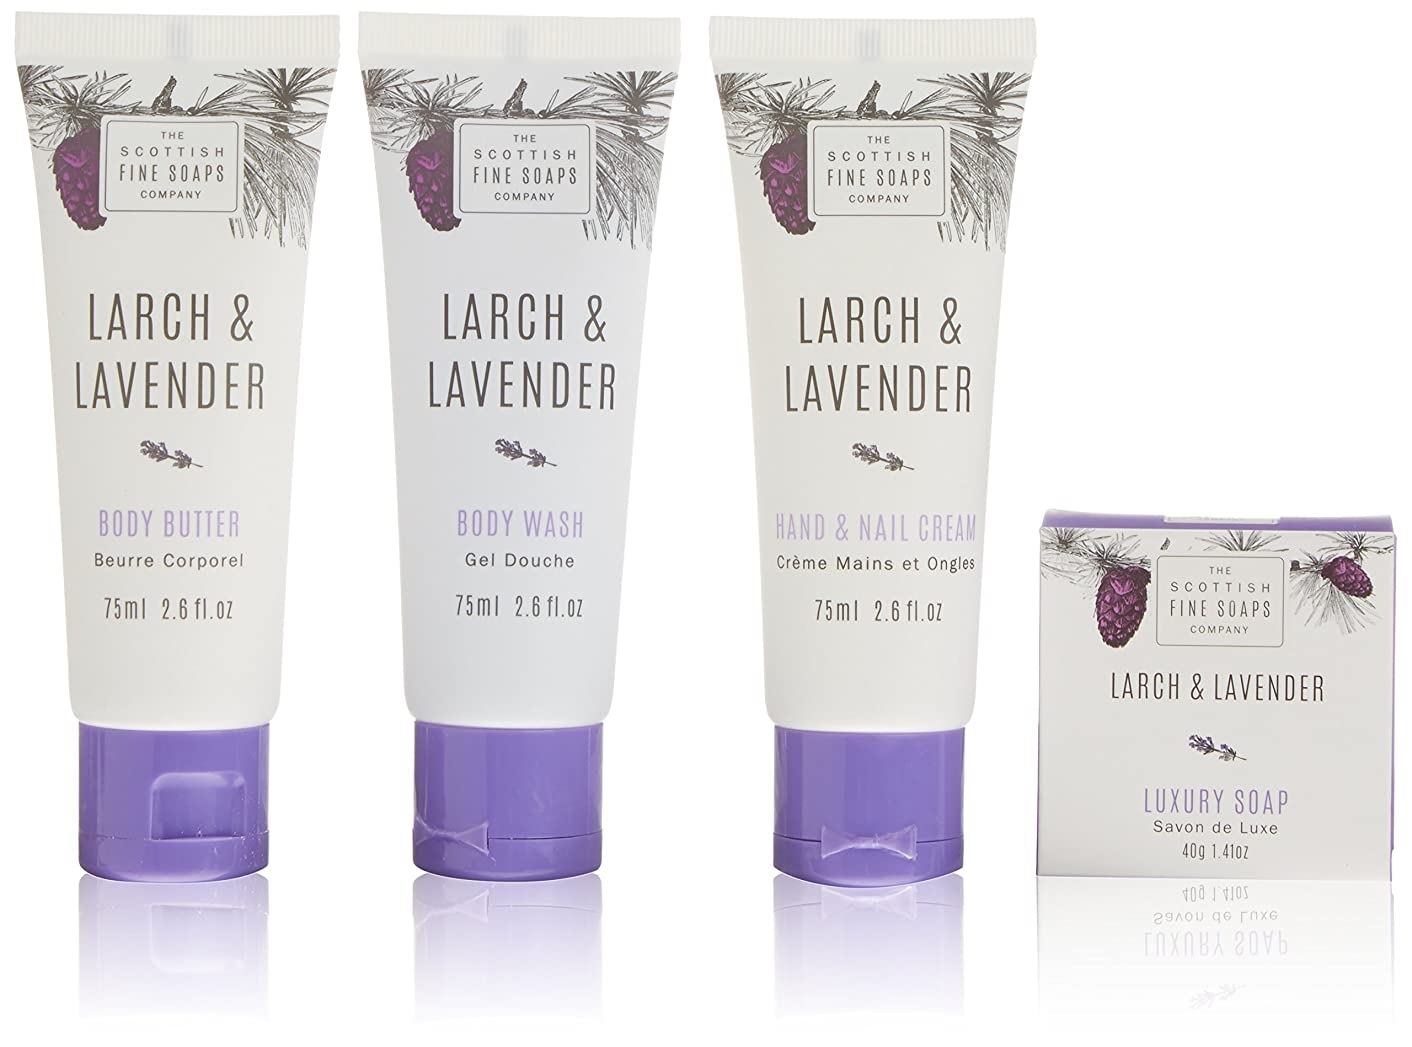 Scottish Fine Soaps Latch and Lavender Luxurious Gift Set